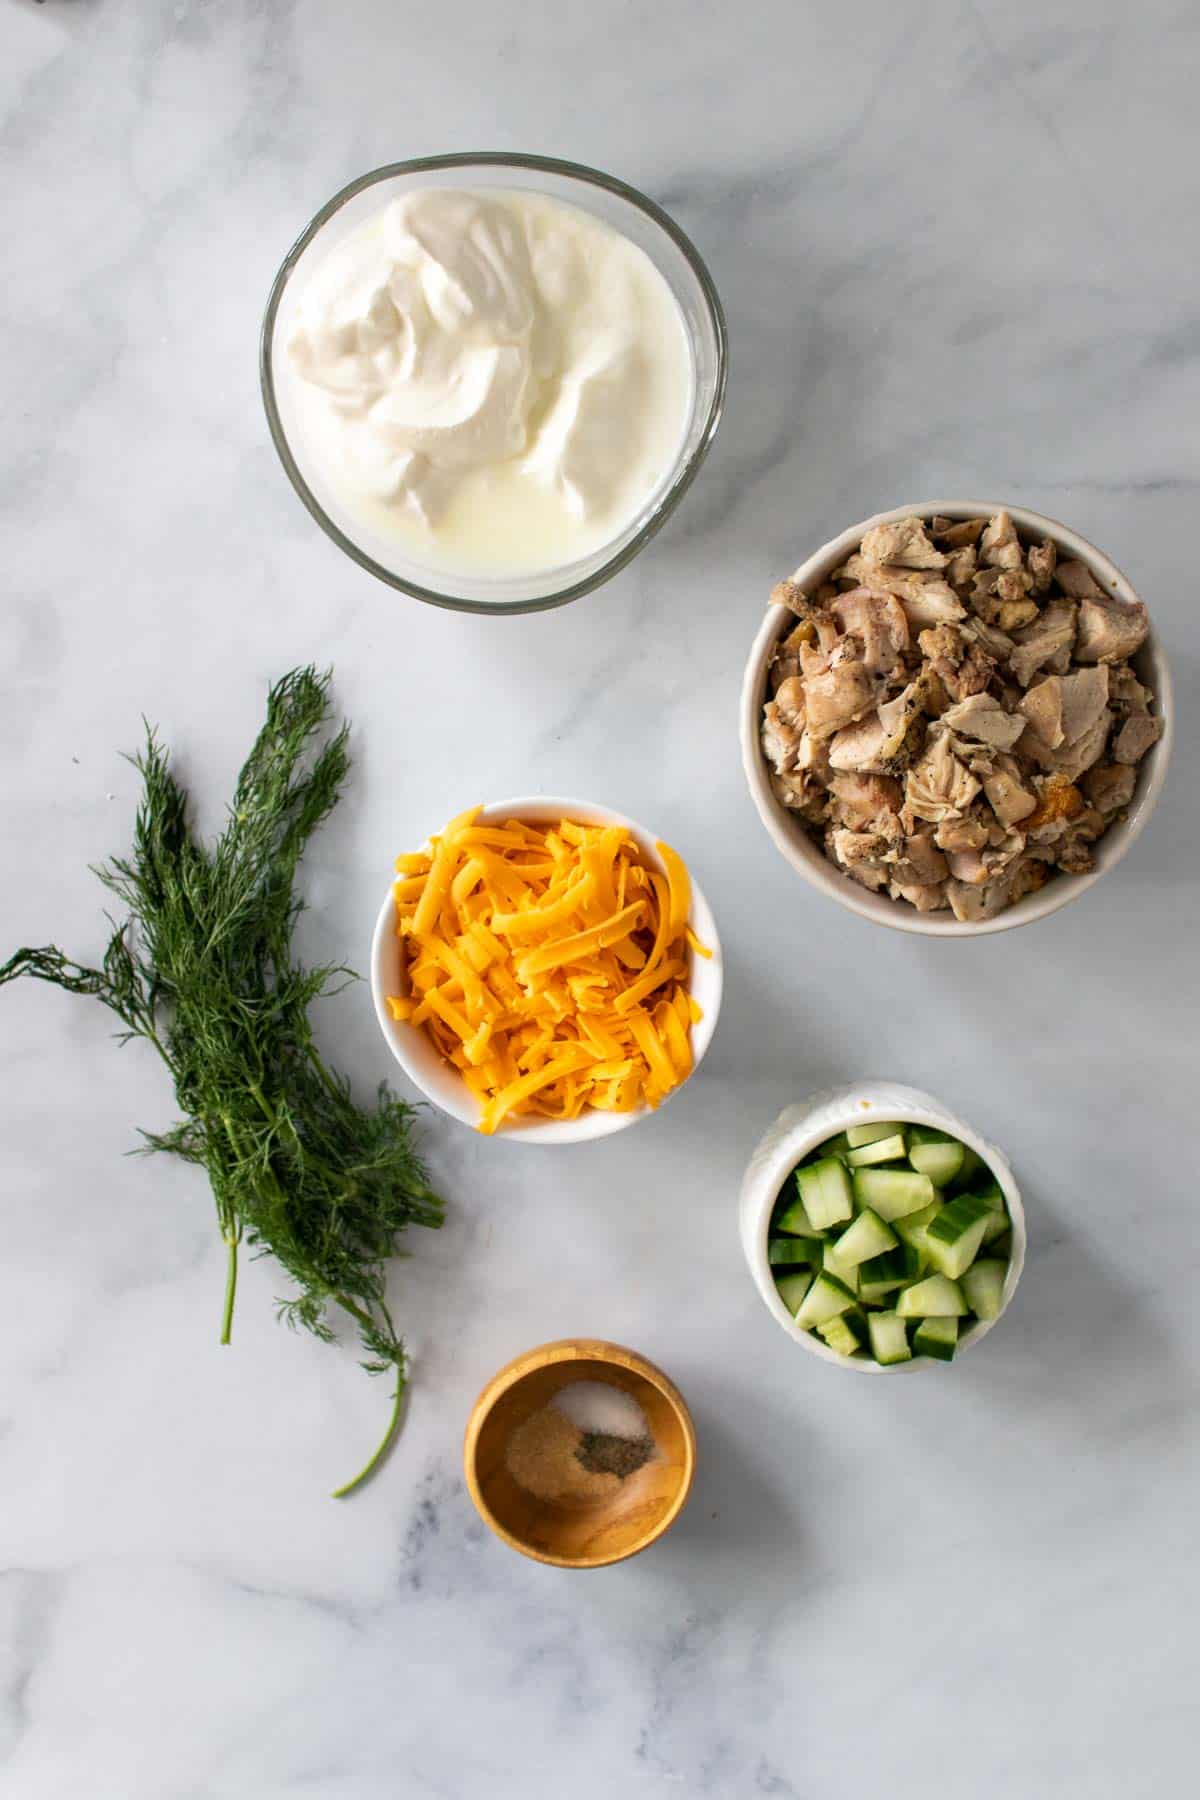 Ingredients for recipe separated into different bowls, as seen from above